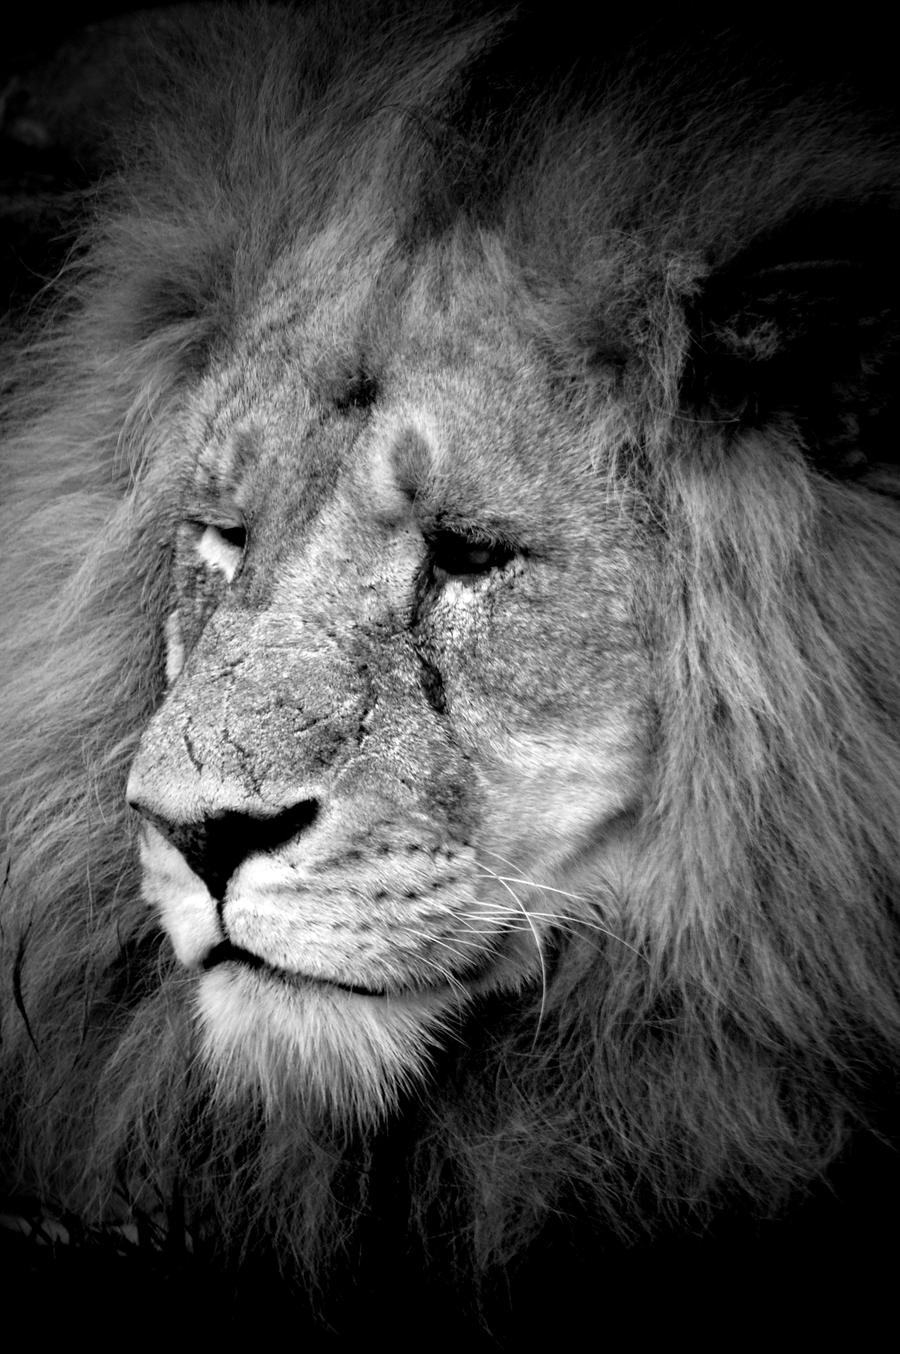 Lion images black and white - photo#25